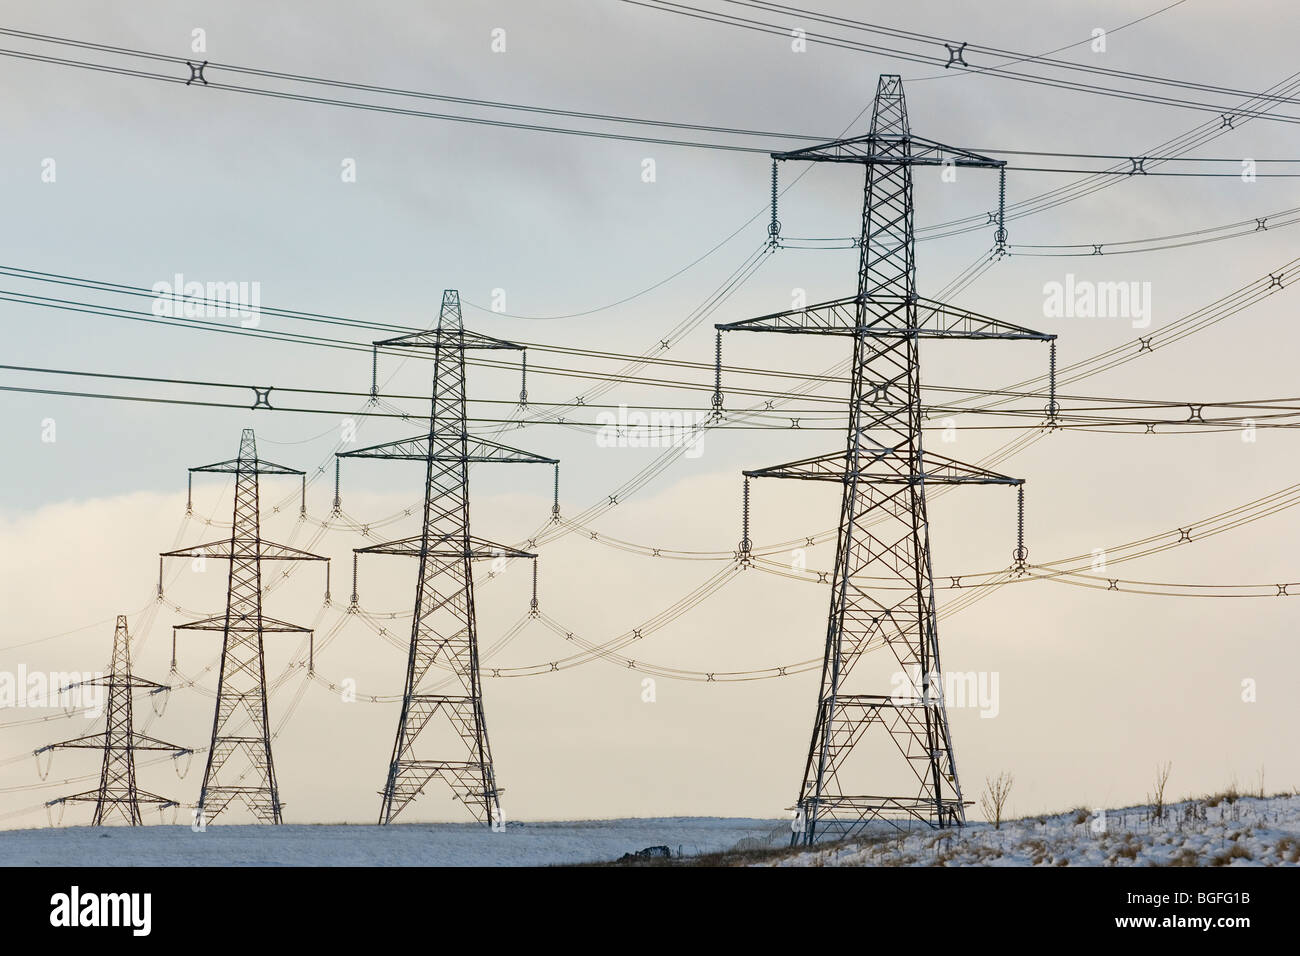 Electricity pylons near to Baitings reservoir, in Ripponden, Calderdale, West Yorkshire, UK - Stock Image